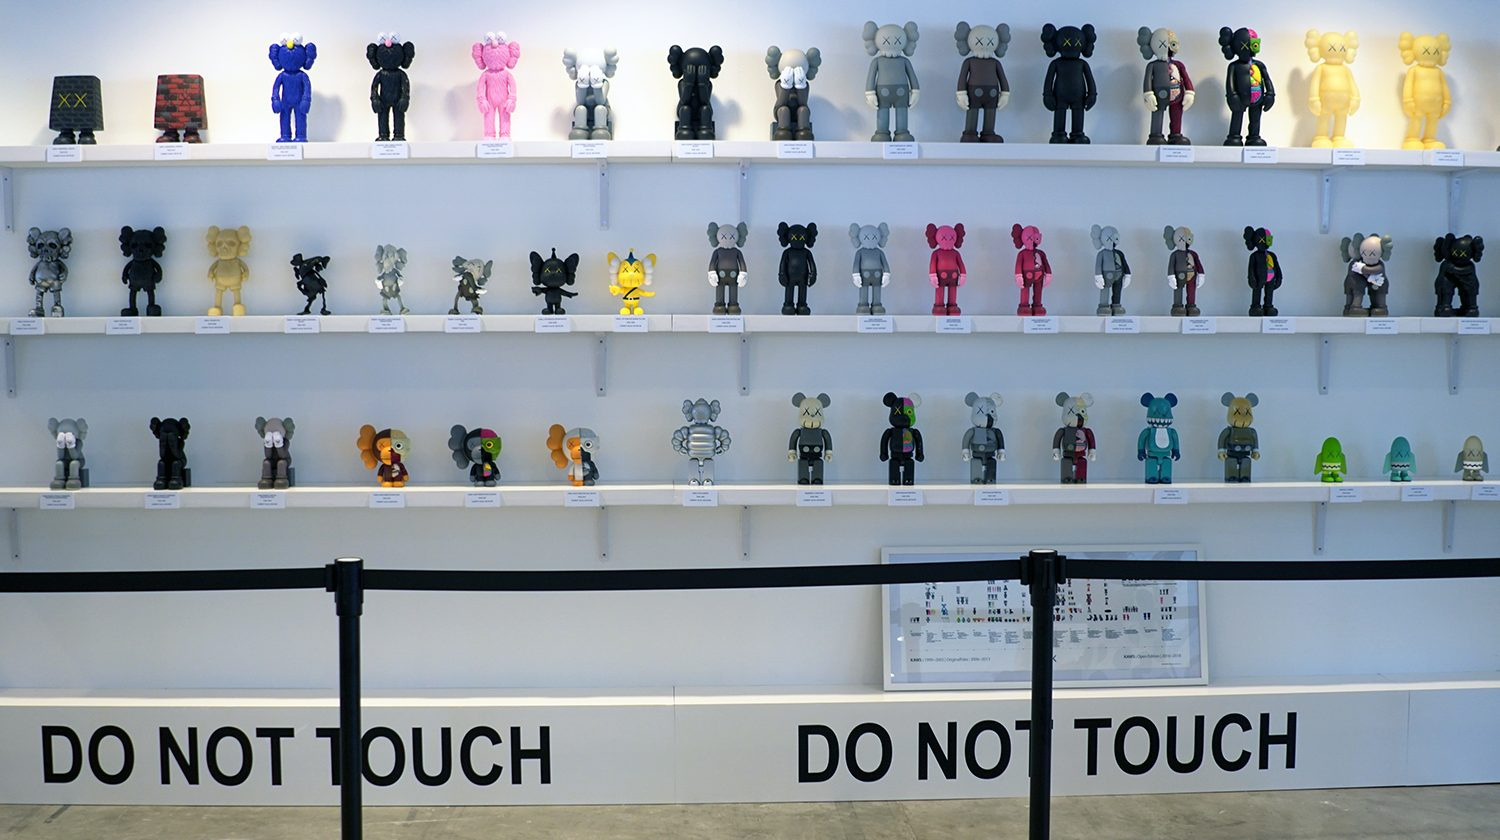 Culture Cartel Toys KAWS 2 by Neighbourlist